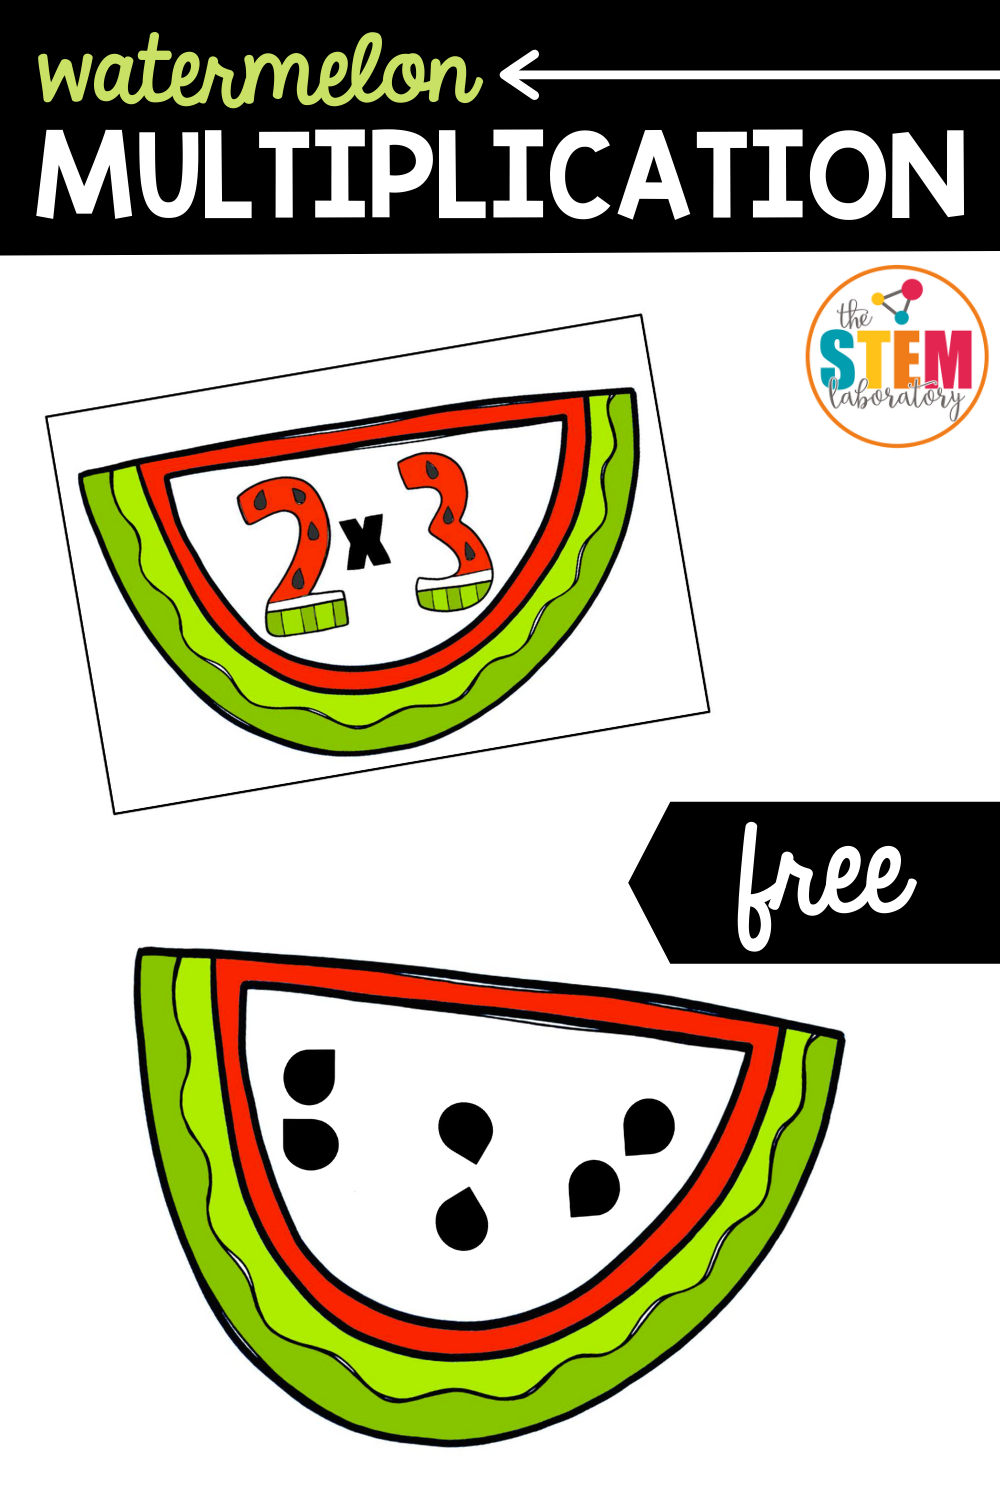 Watermelon Multiplication Activity